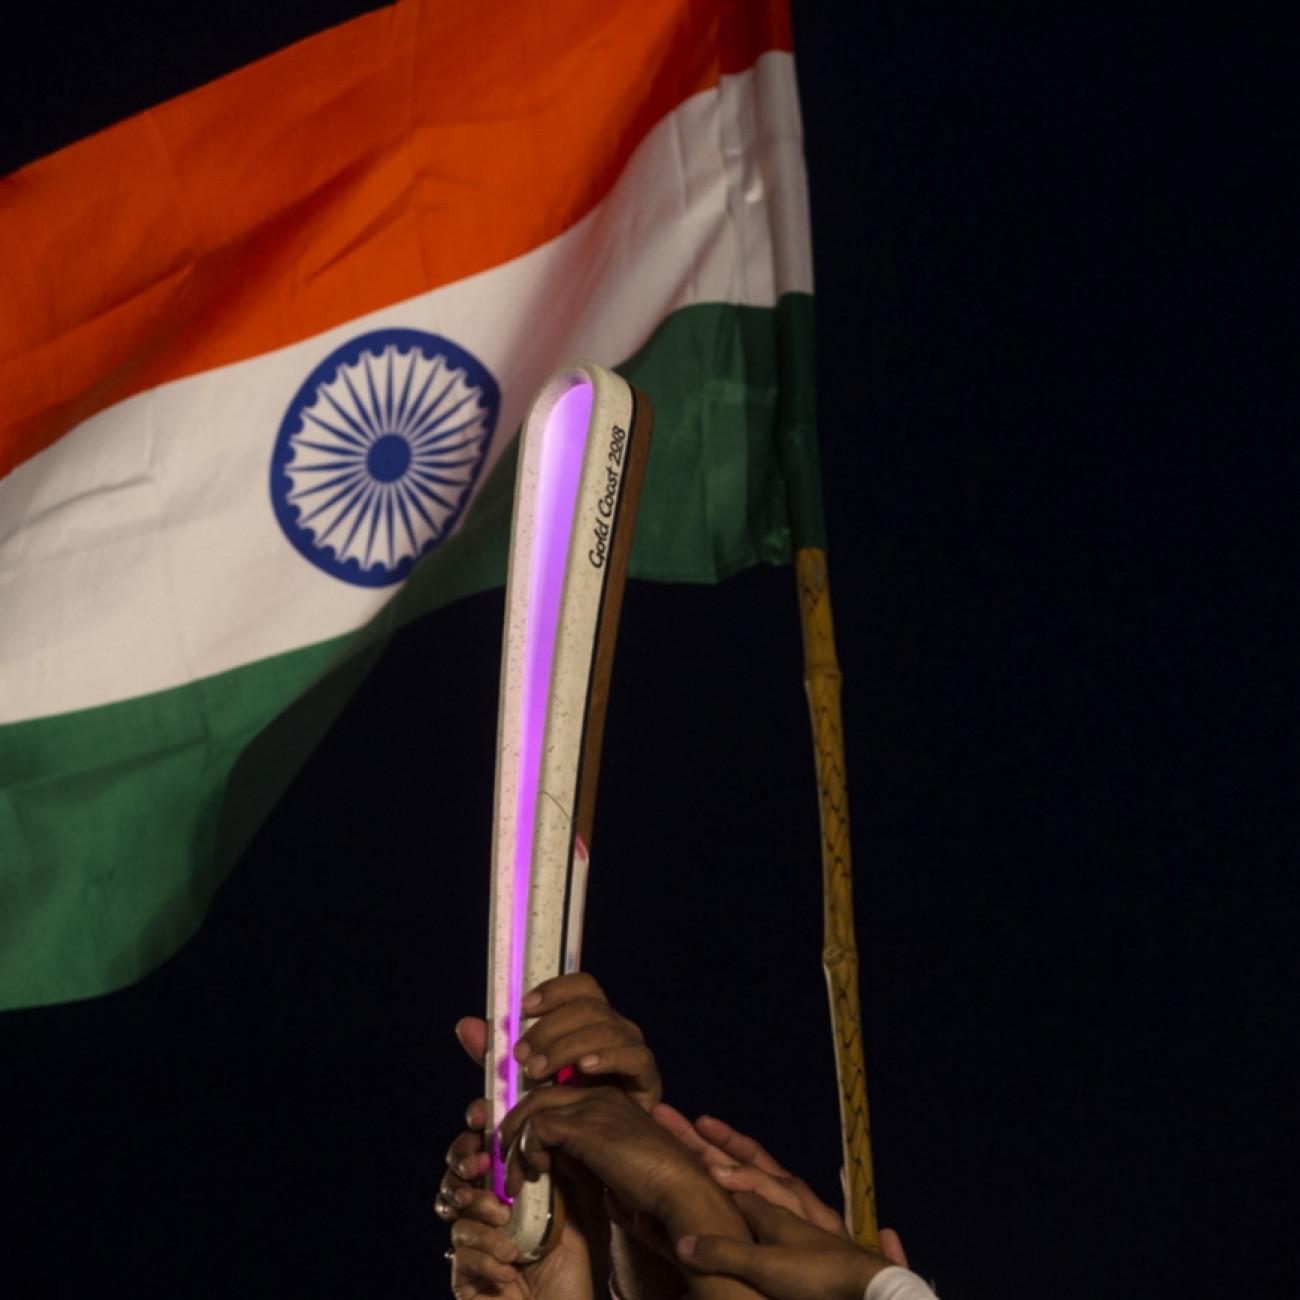 A group of performers holding on to the Baton in front of the Indian flag at a ceremony in the town of Nainital